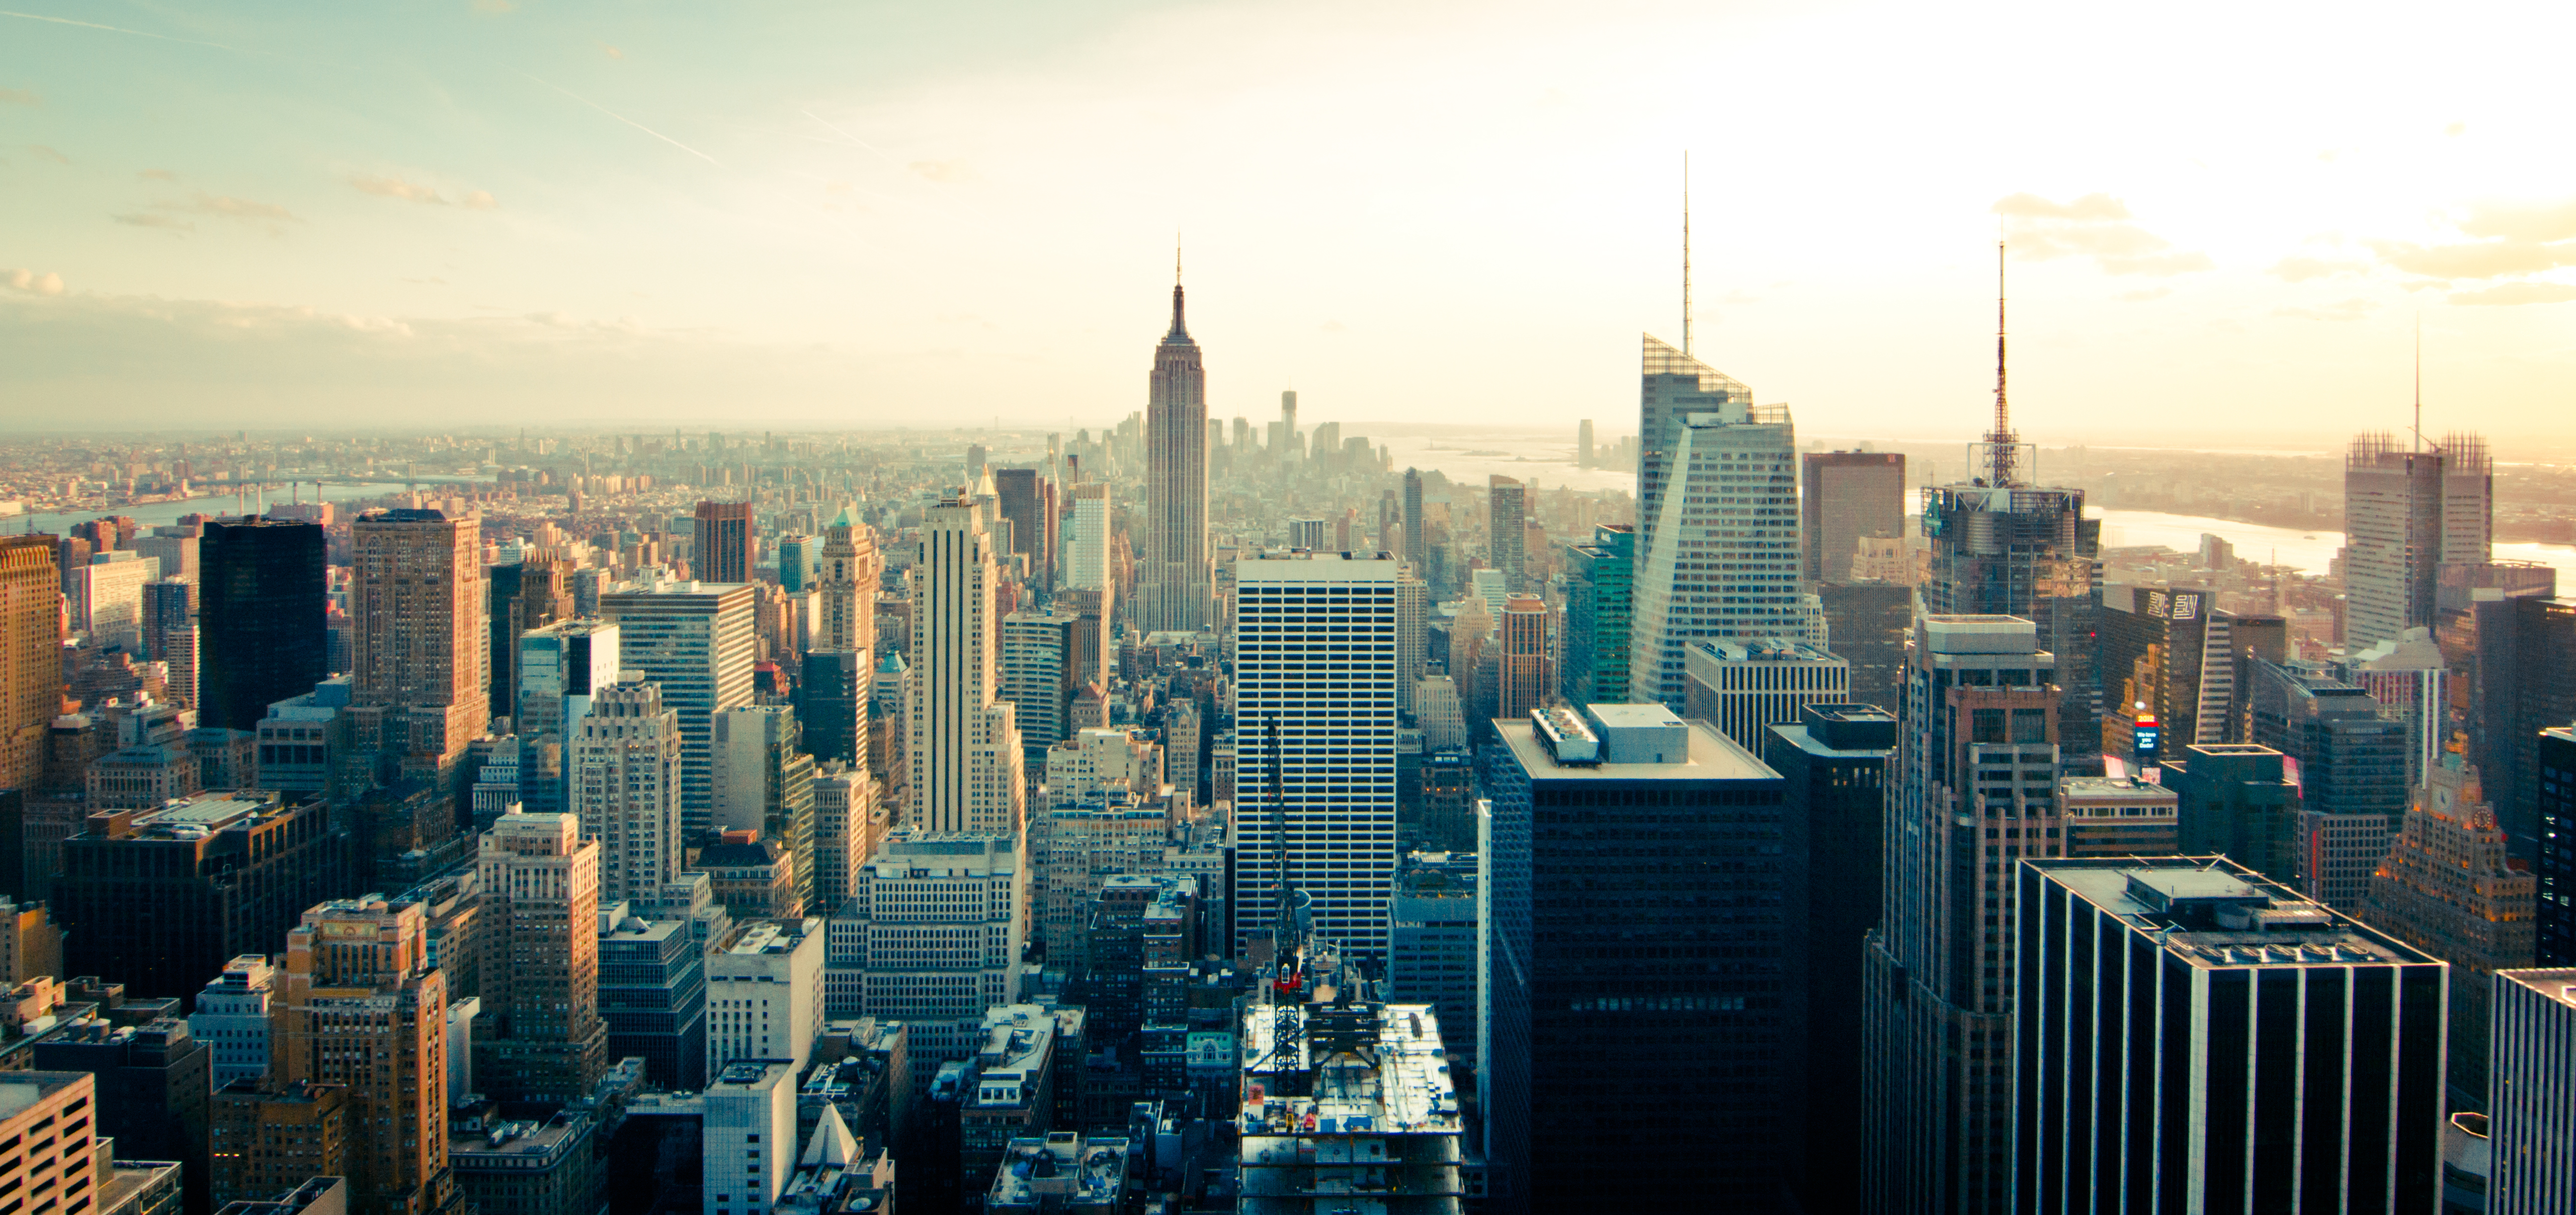 At 27,000 residents per square mile, NYC has the highest population density of any city in the U.S.